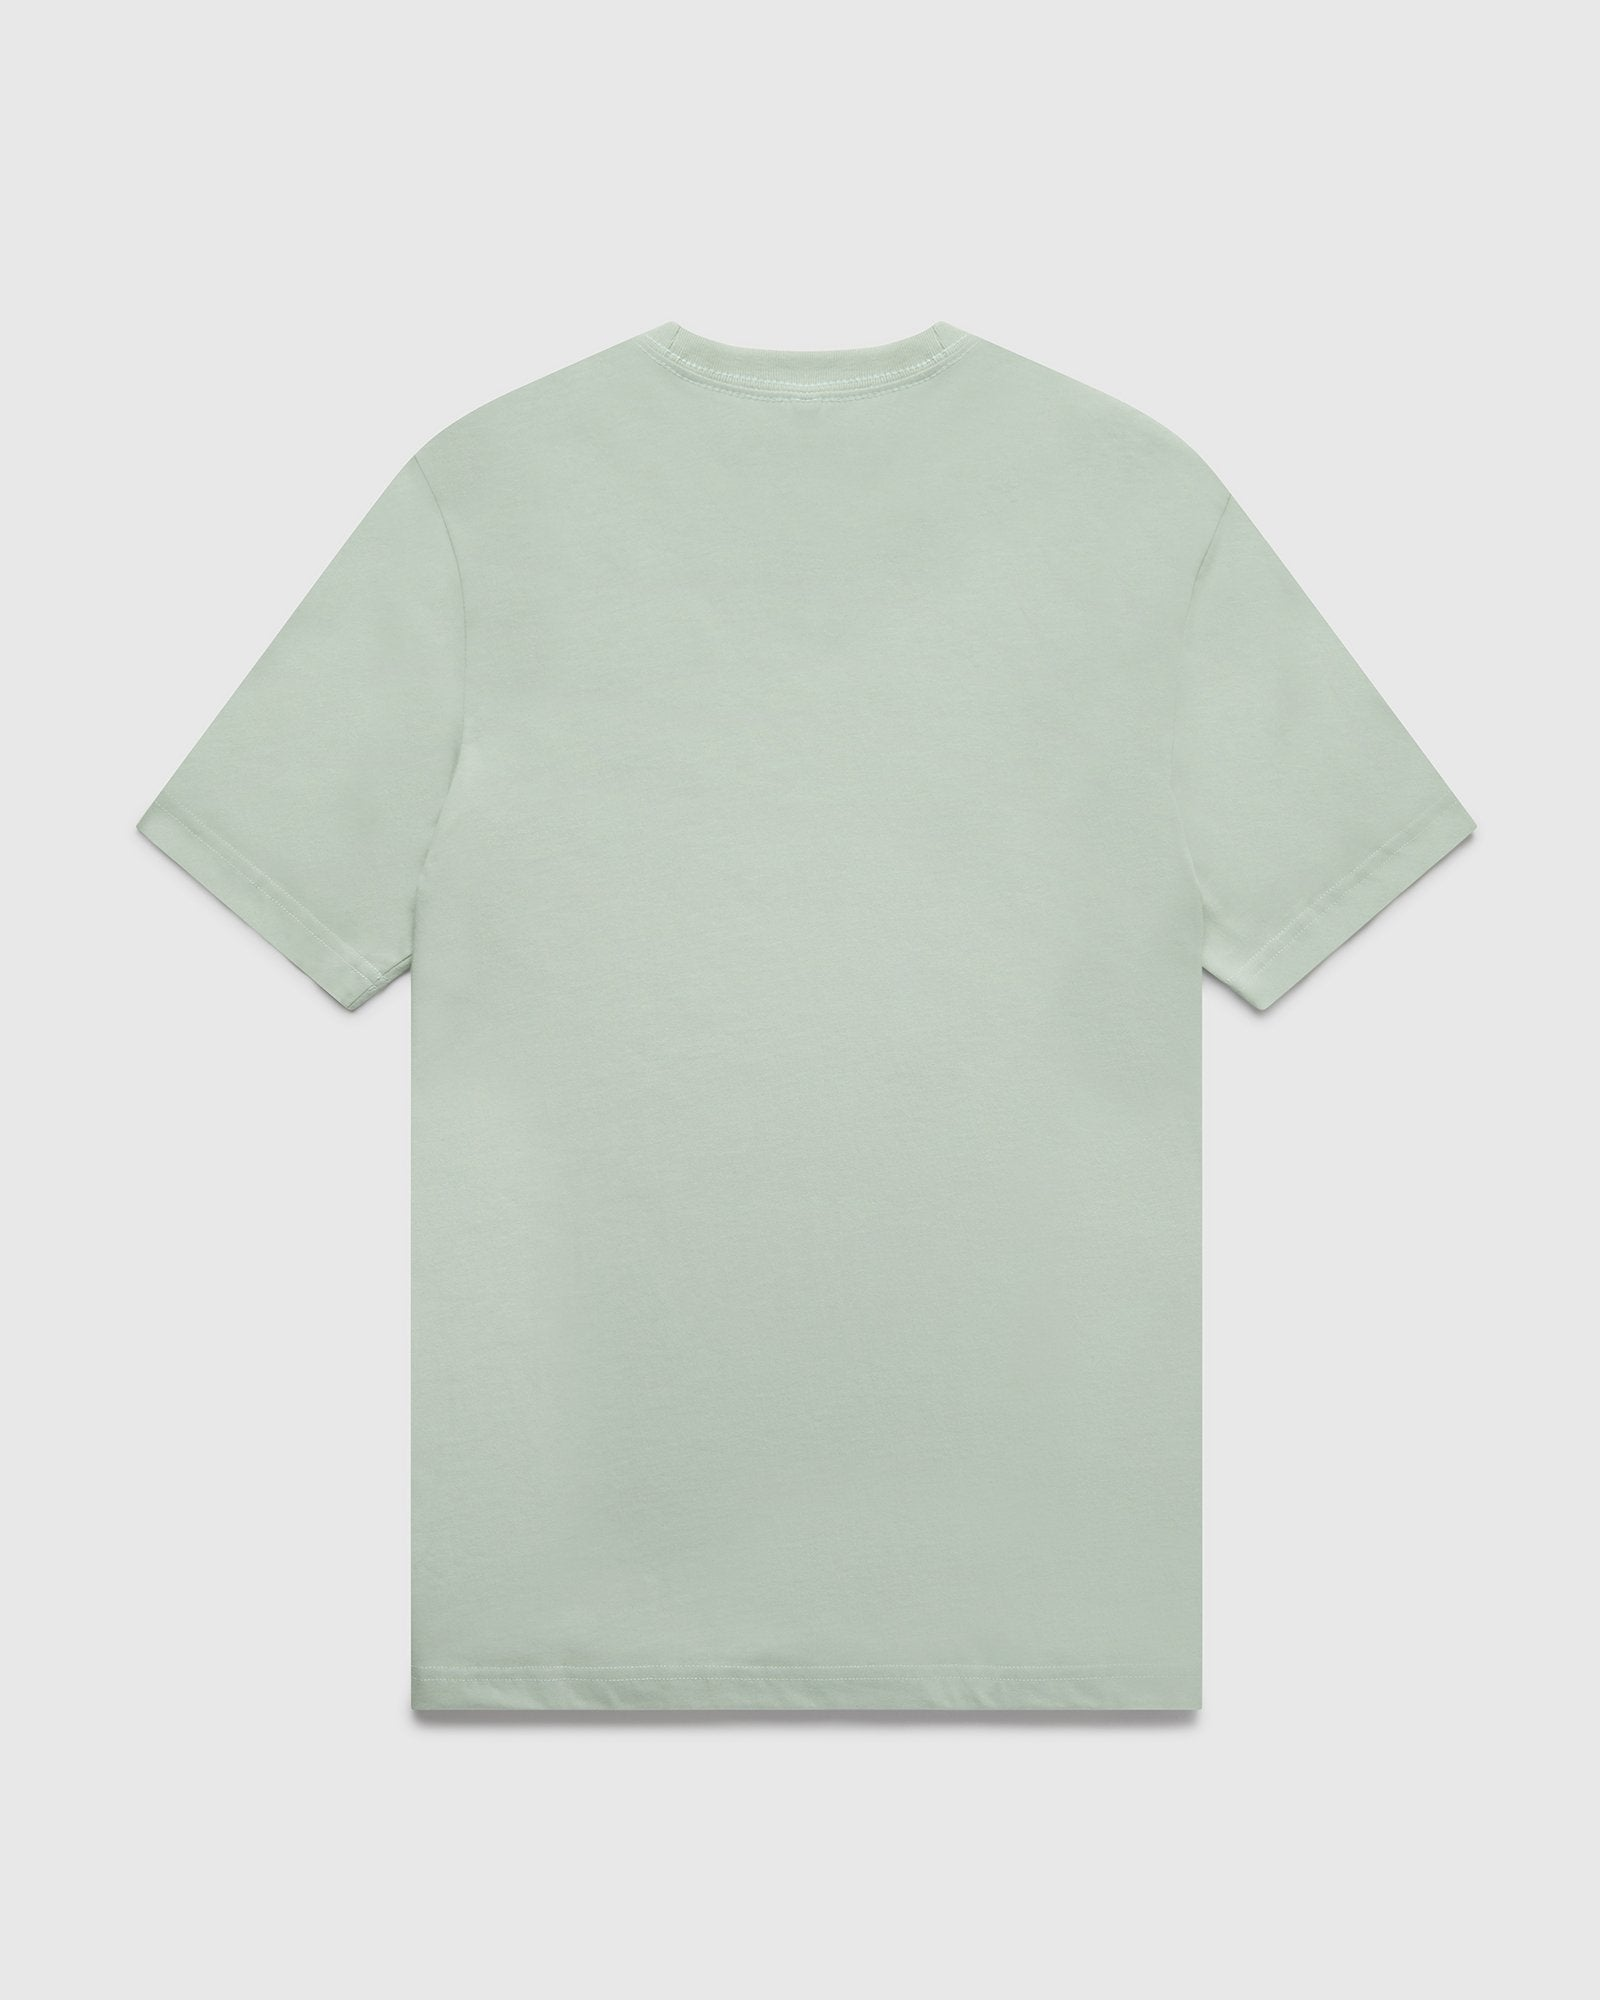 CIRCLE T-SHIRT - MINT GREEN IMAGE #2